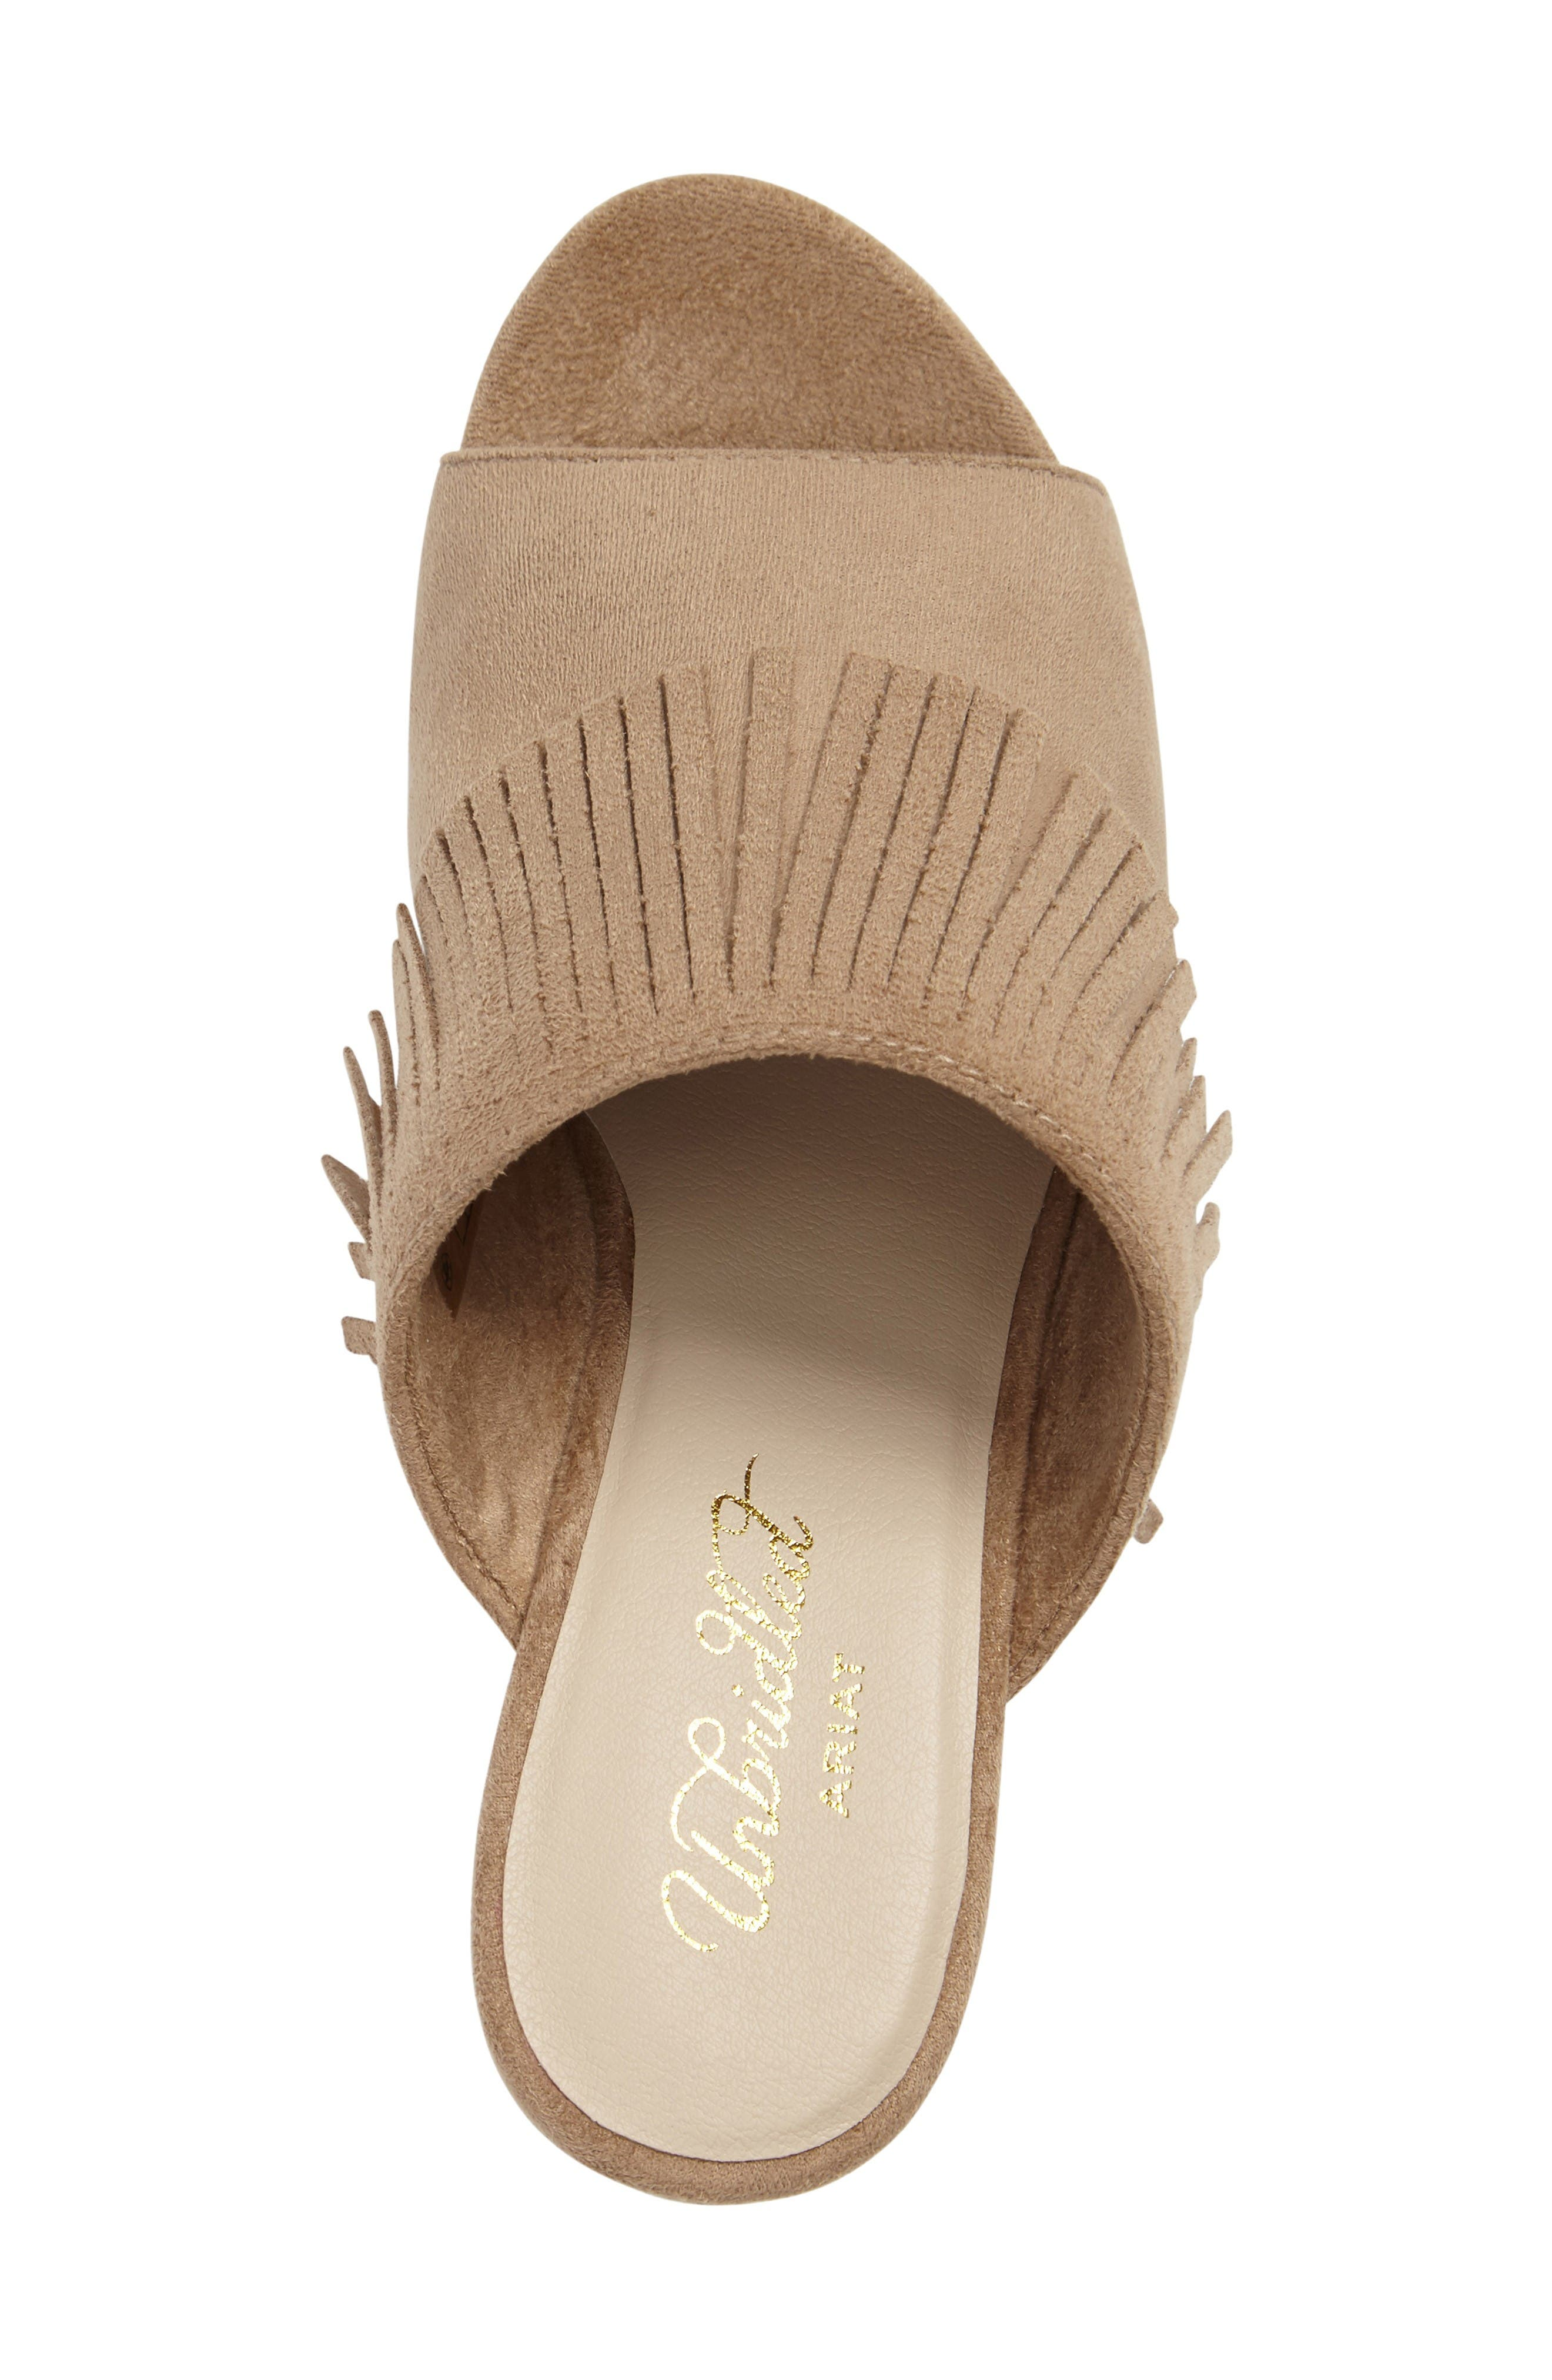 ARIAT UNBRIDLED LEIGH FRINGE MULE (WOMEN), SAND SUEDE